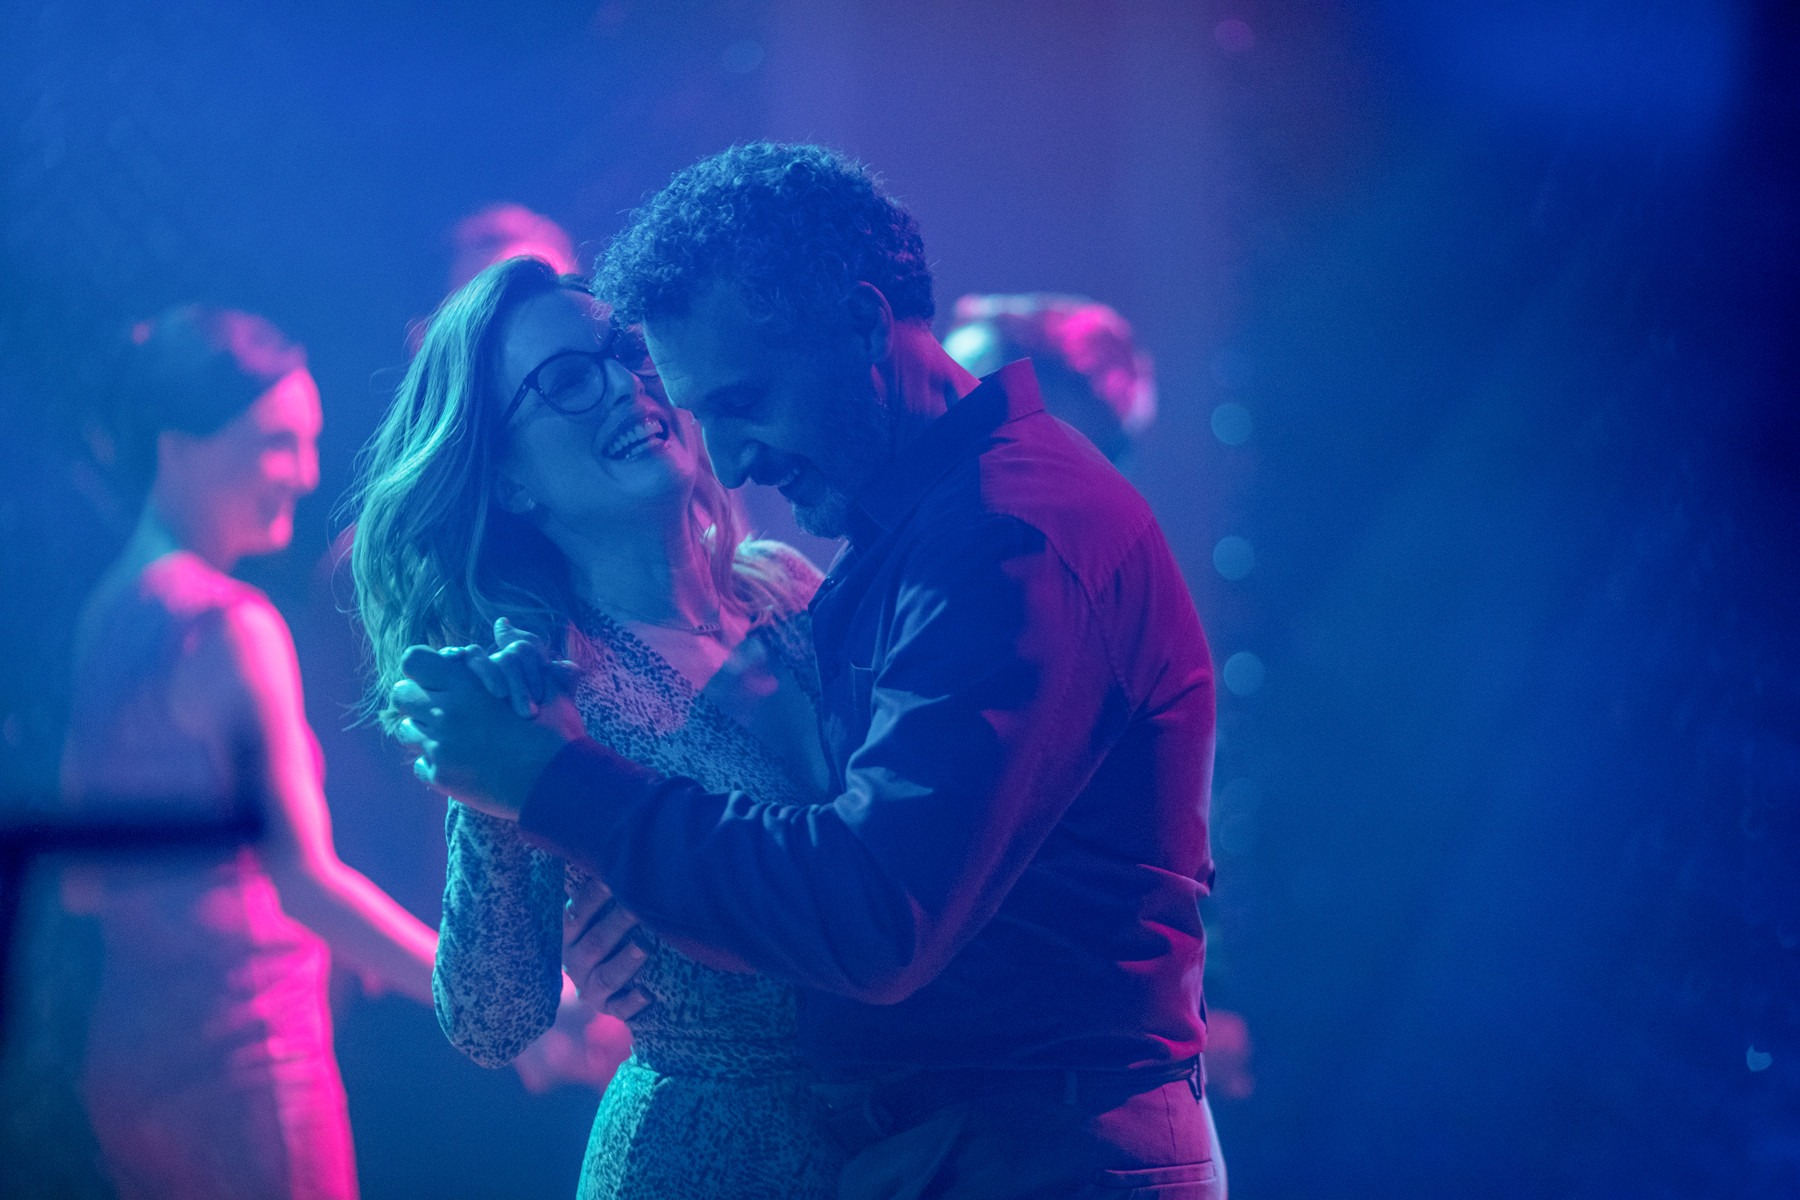 Review: Gloria Bell Could Have Been an Expectation-Ducking